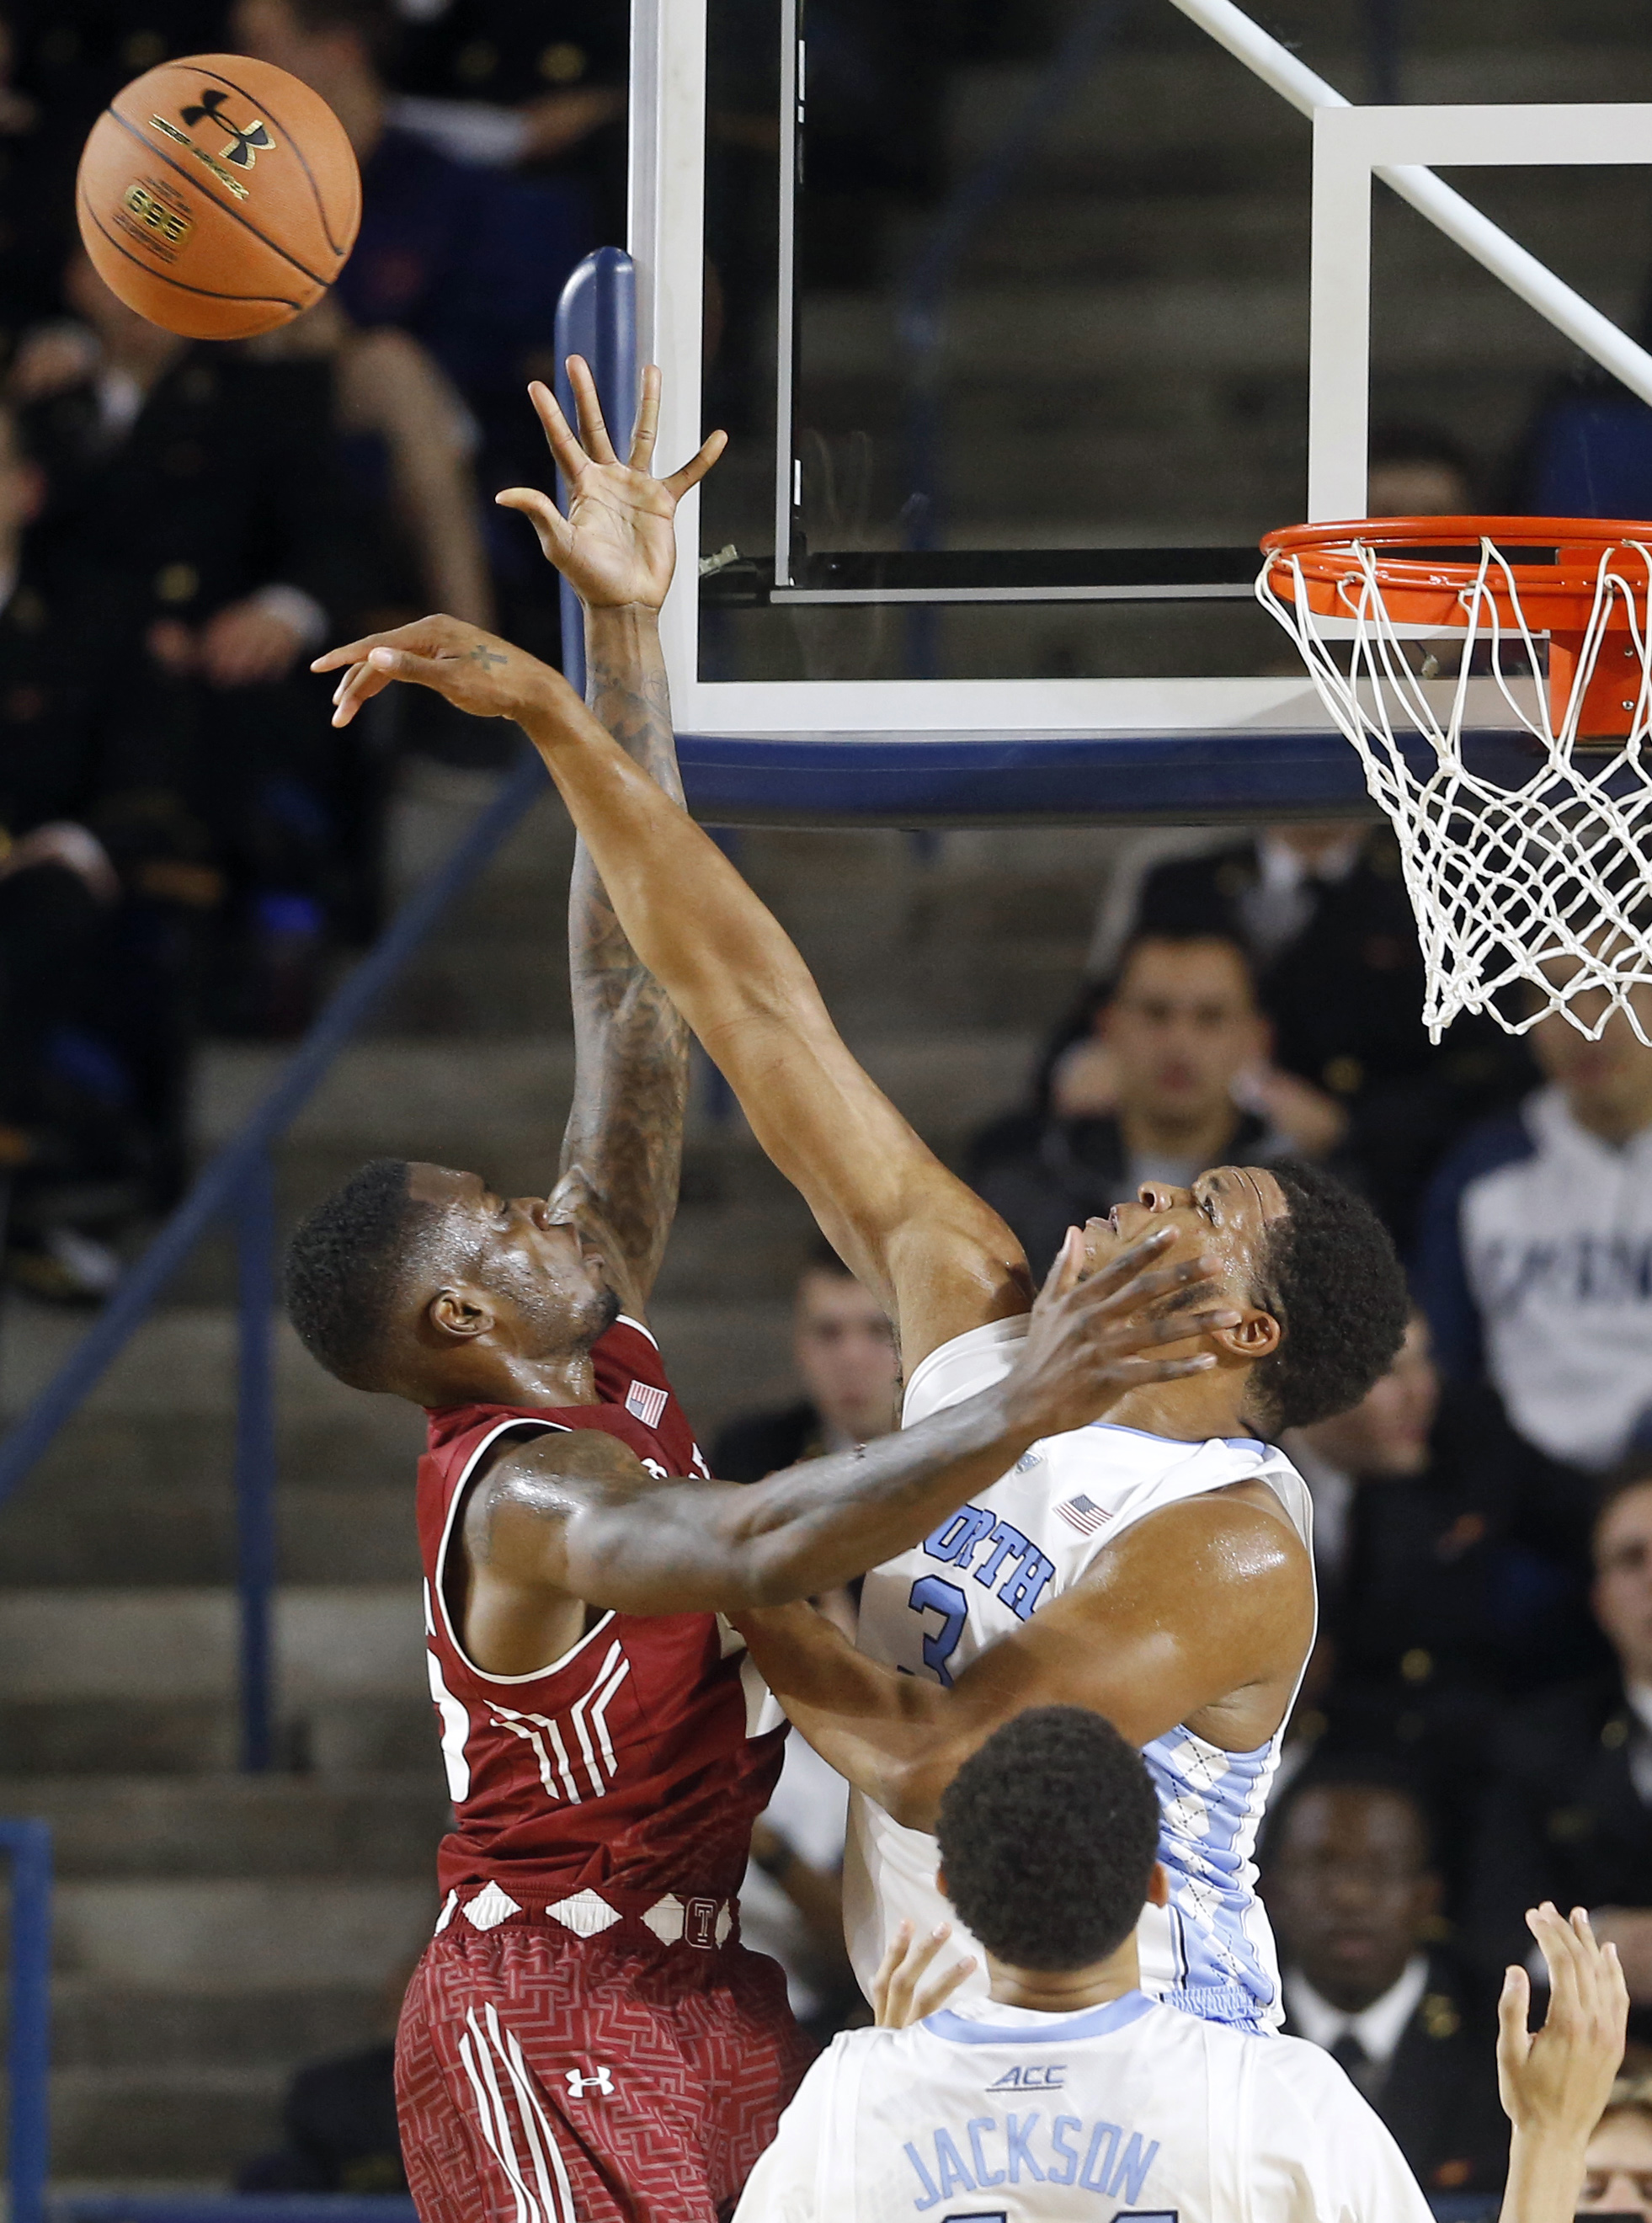 North Carolina forward Kennedy Meeks, right, blocks a shot attempt by Temple guard Quenton DeCosey in the first half of a Veterans Classic NCAA college basketball game, Friday, Nov. 13, 2015, in Annapolis, Md. (AP Photo/Patrick Semansky)